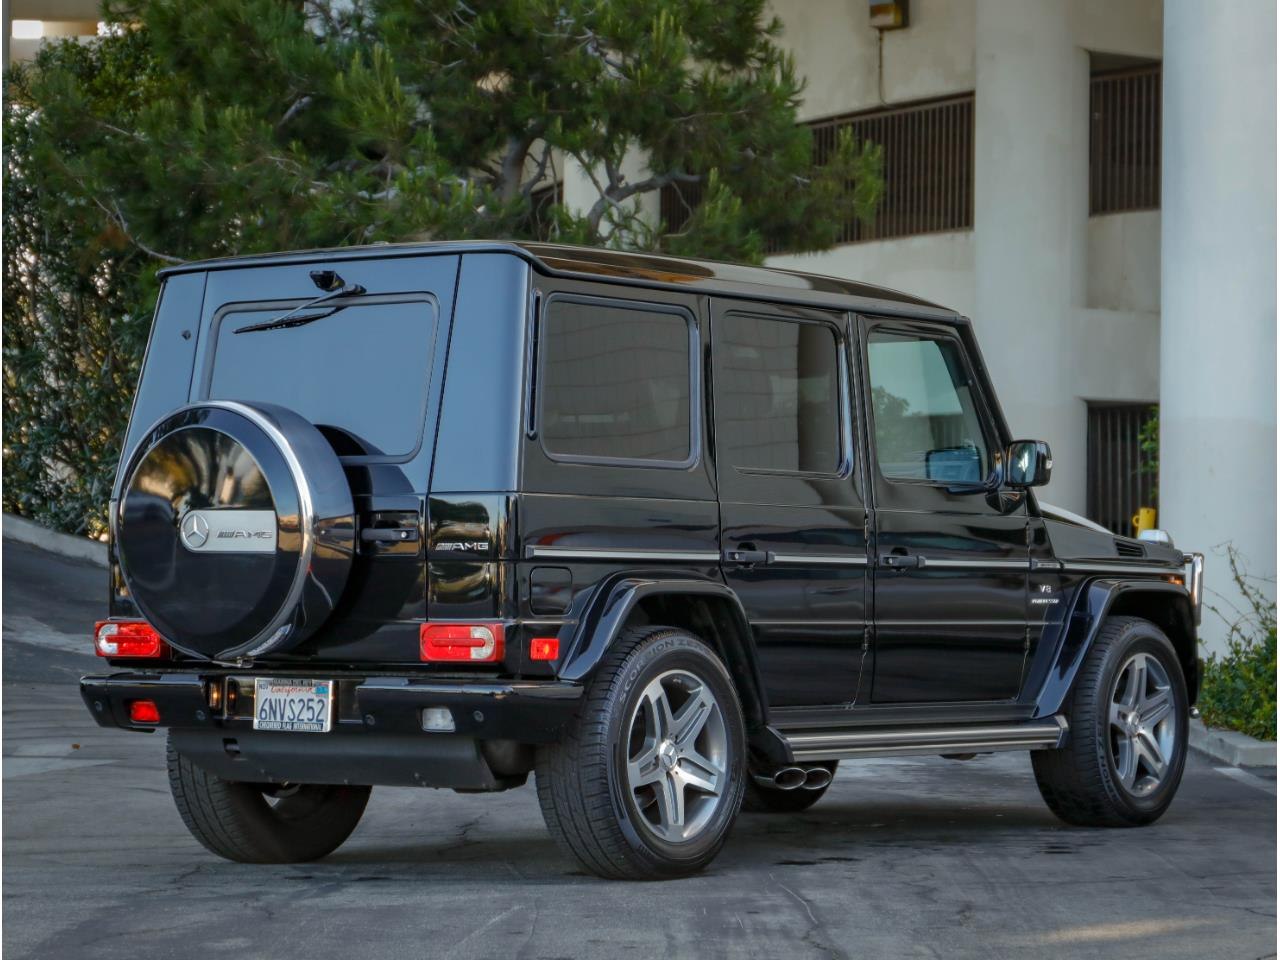 2011 Mercedes-Benz G550 for sale in Marina Del Rey, CA – photo 8